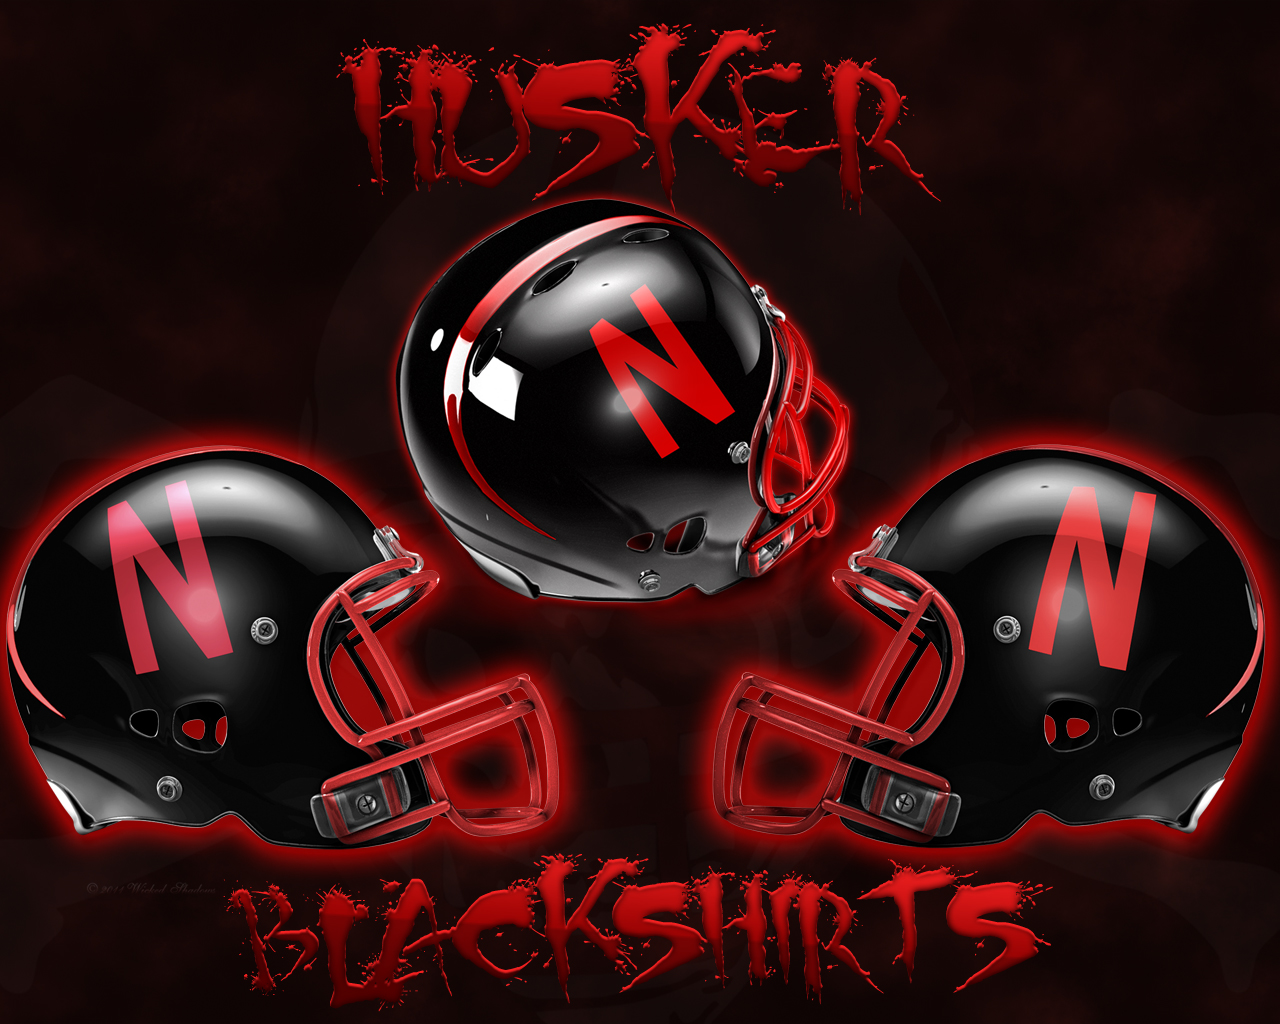 wallpapers by wicked shadows husker blackshirts black